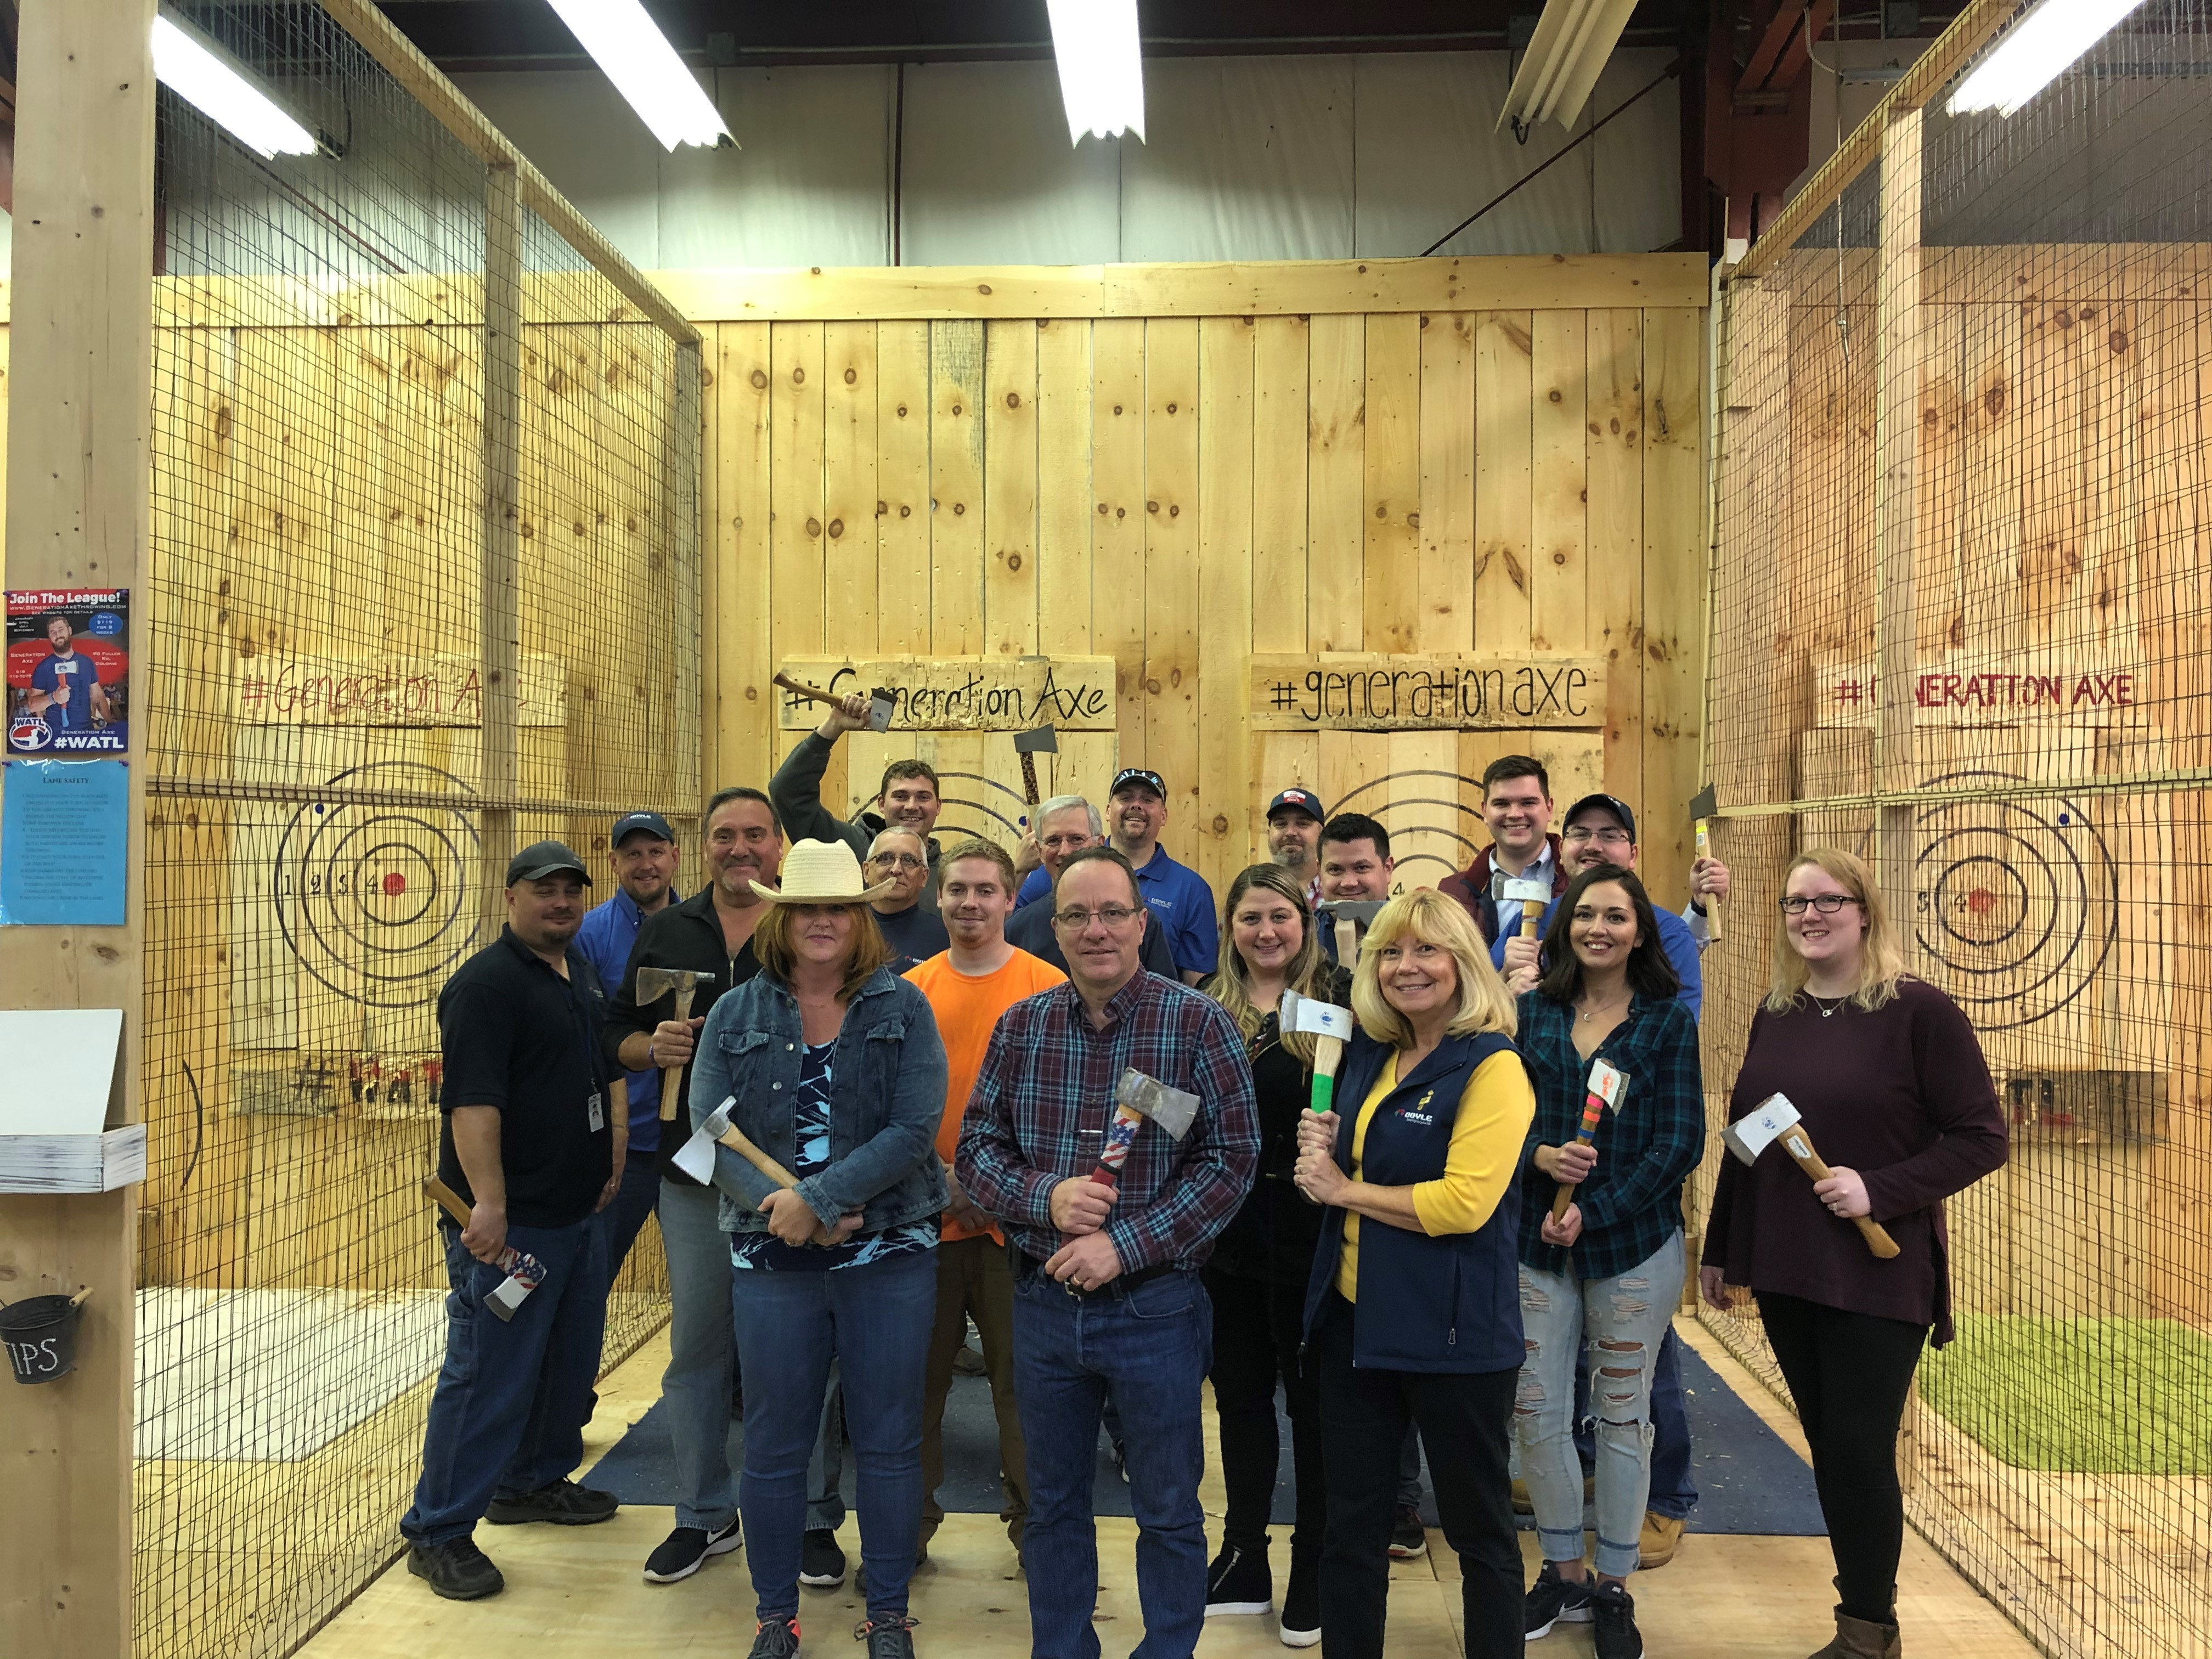 Albany Axe throwing